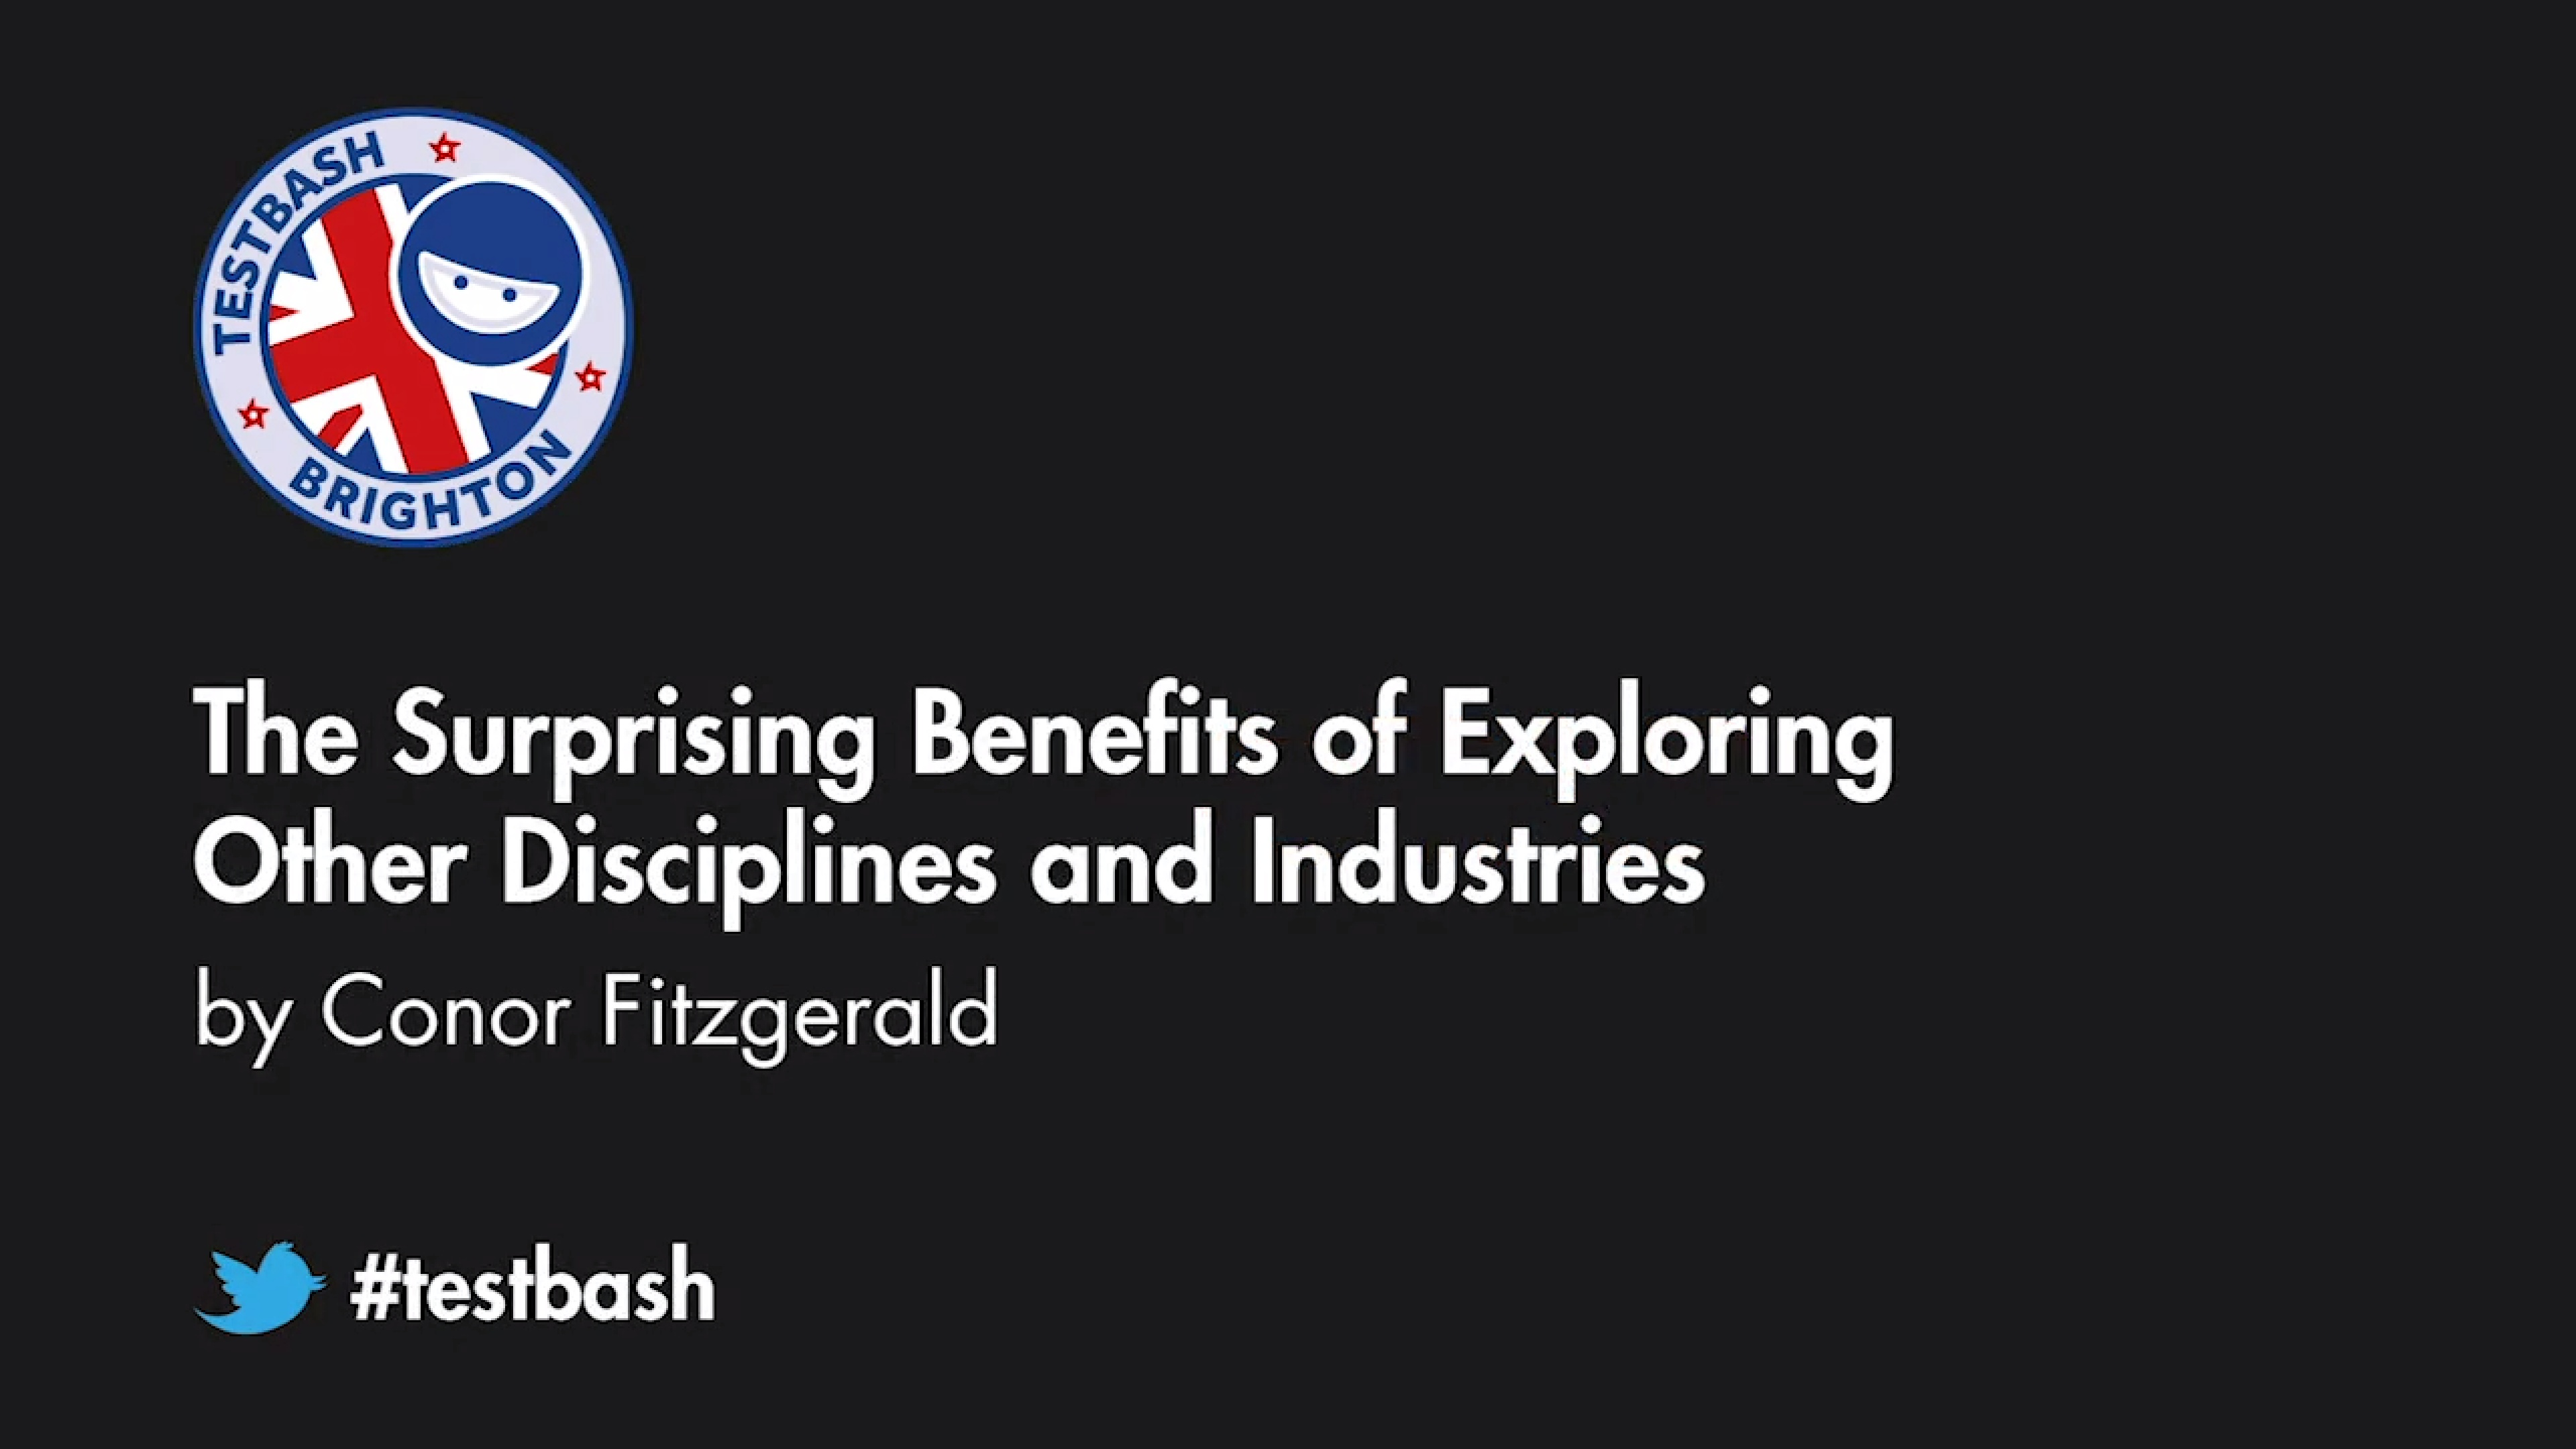 The Surprising Benefits of Exploring Other Disciplines and Industries - Conor Fitzgerald